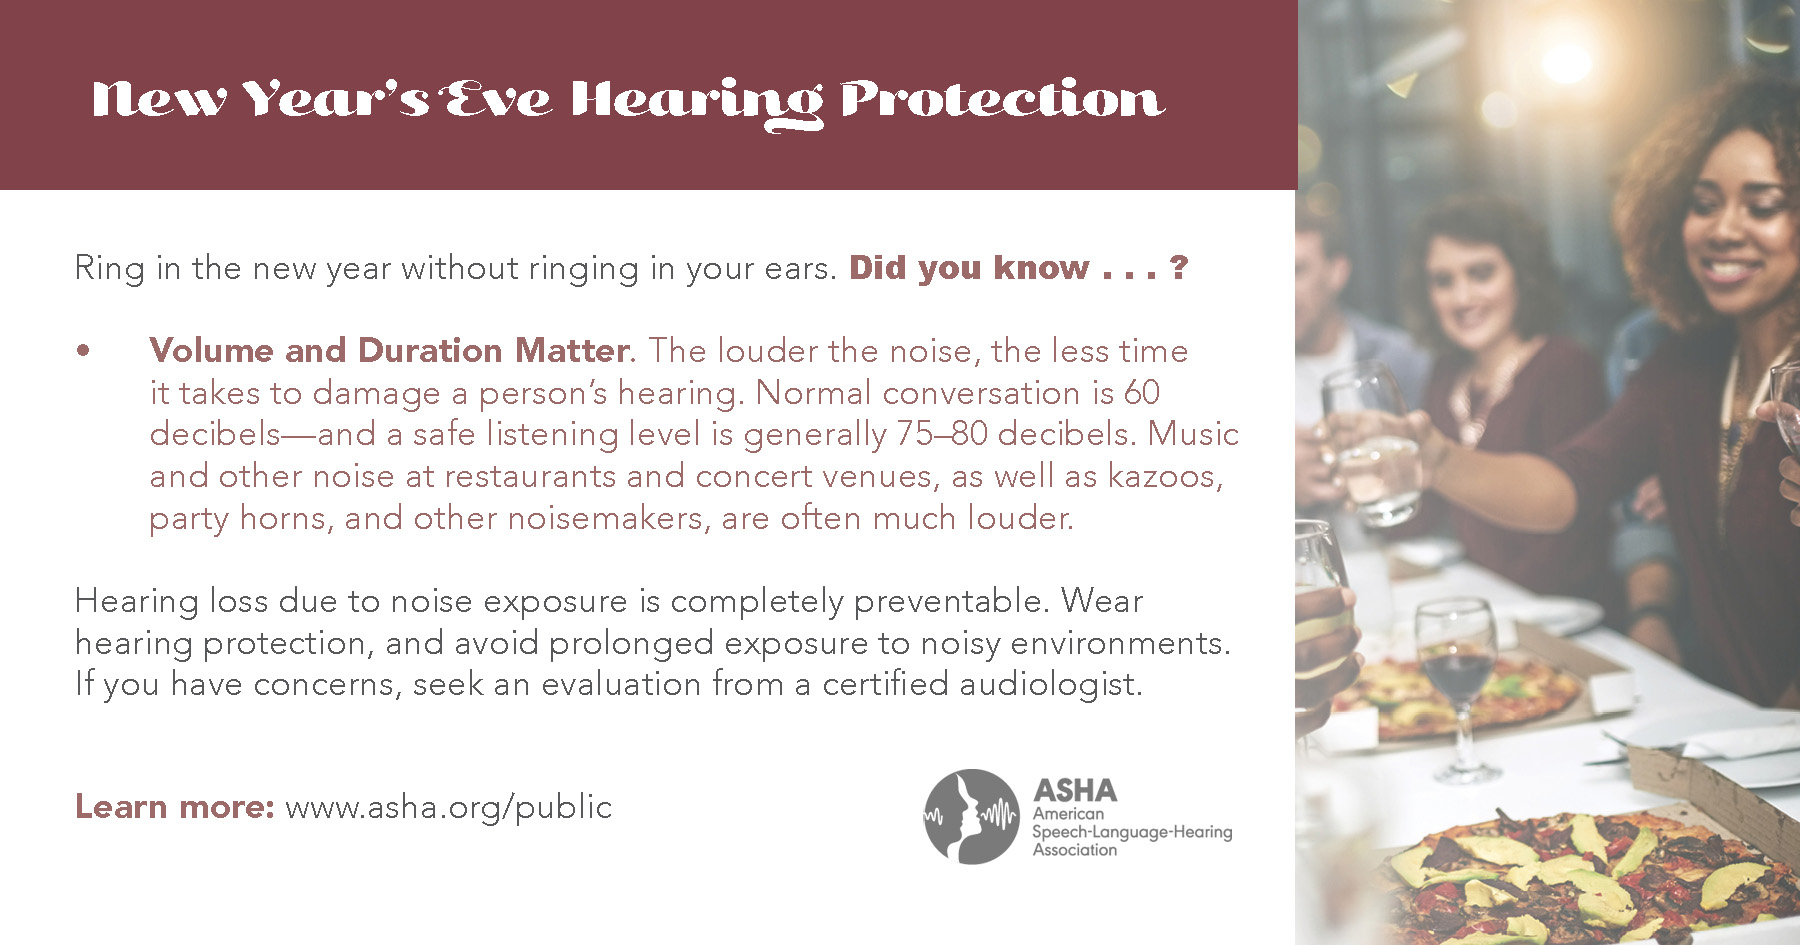 Did You Know? Volume and Duration Matter